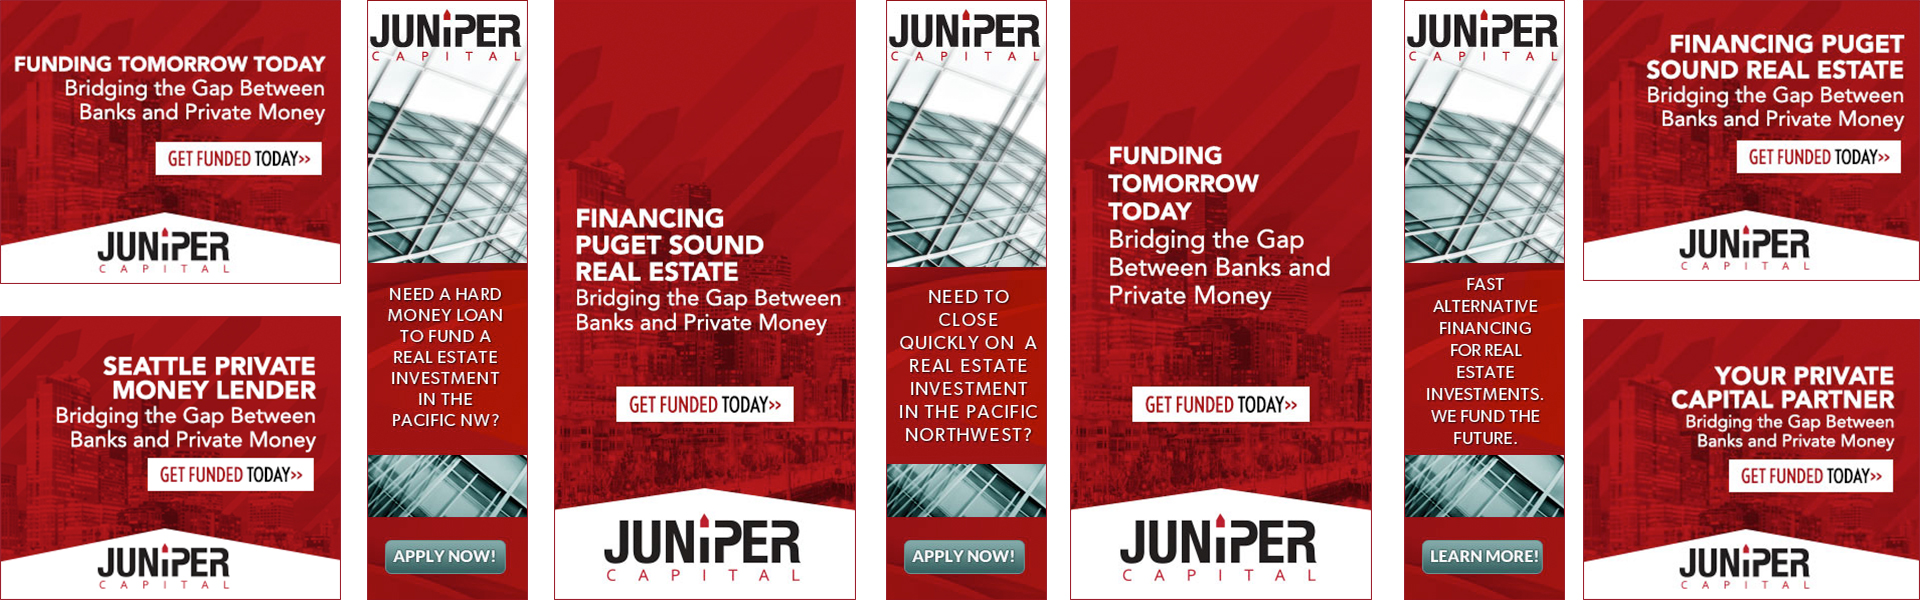 Juniper Capital Digital Ads | Seattle Digital Marketing Agency | CMA